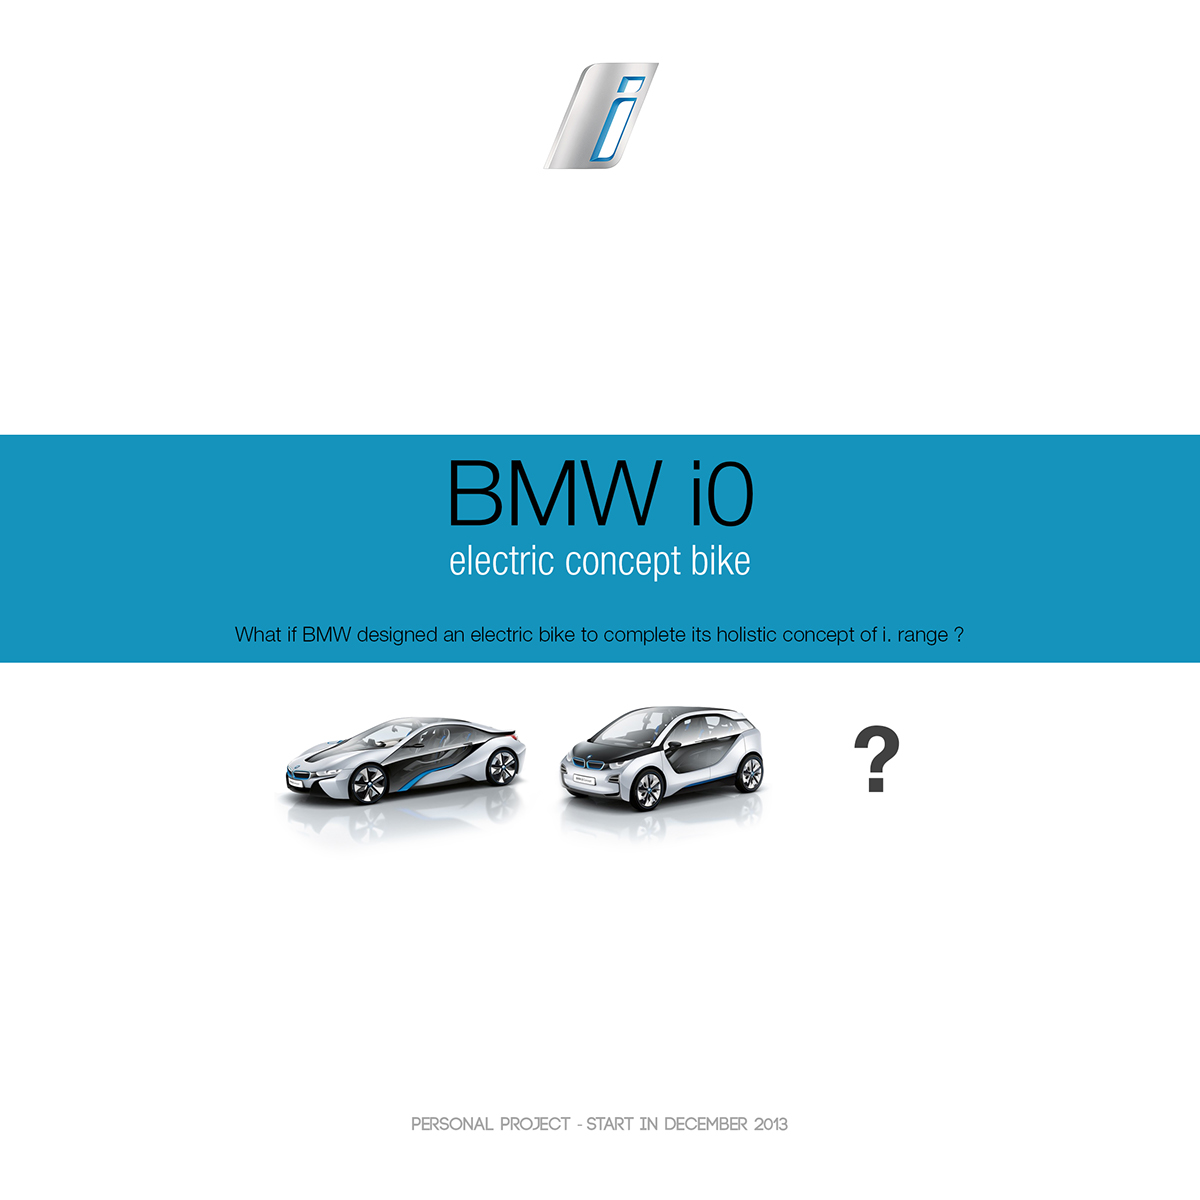 Bmw I0 On Behance Electric Bike What If Designed An To Complete Its Global Concept Of I Range